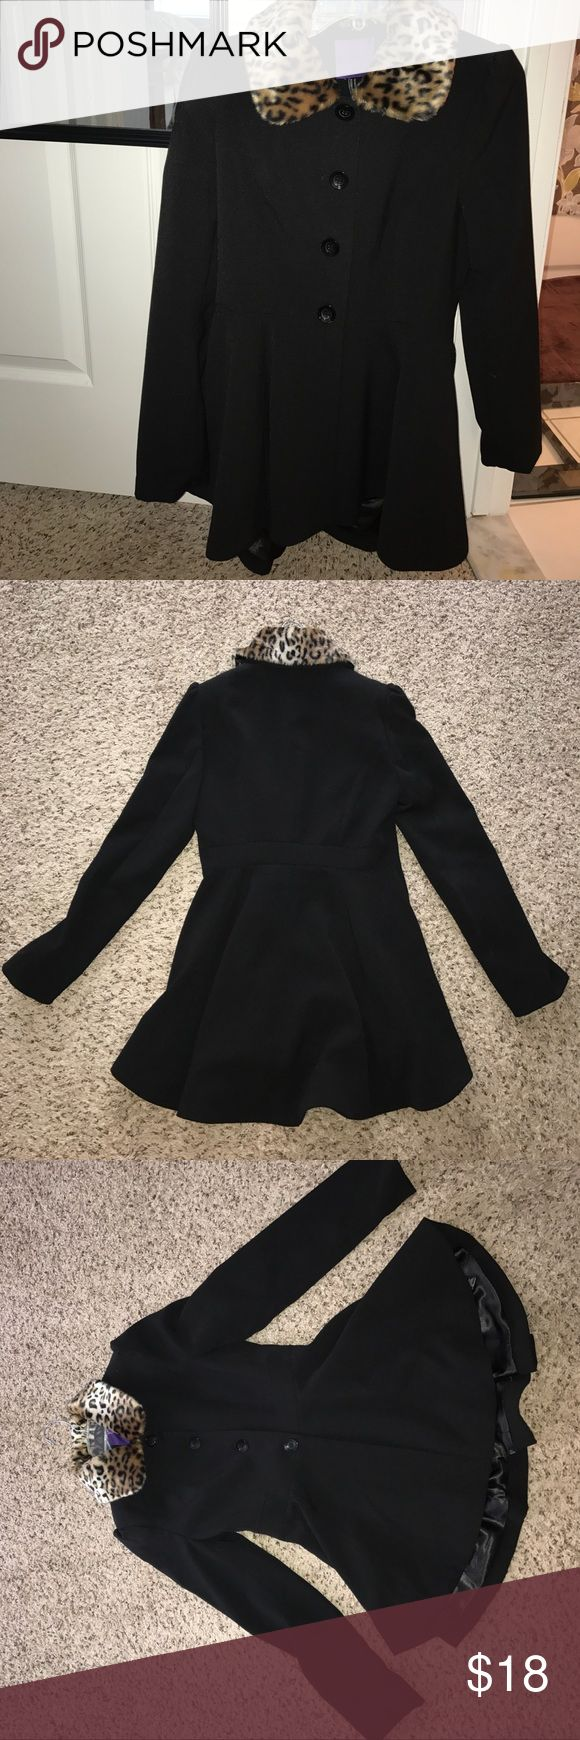 A line Coat with faux fur Cute coat with an A line fit! Faux cheetah fur on the top. Great condition hardly worn. Cute for going out or even work Forever 21 Jackets & Coats Blazers